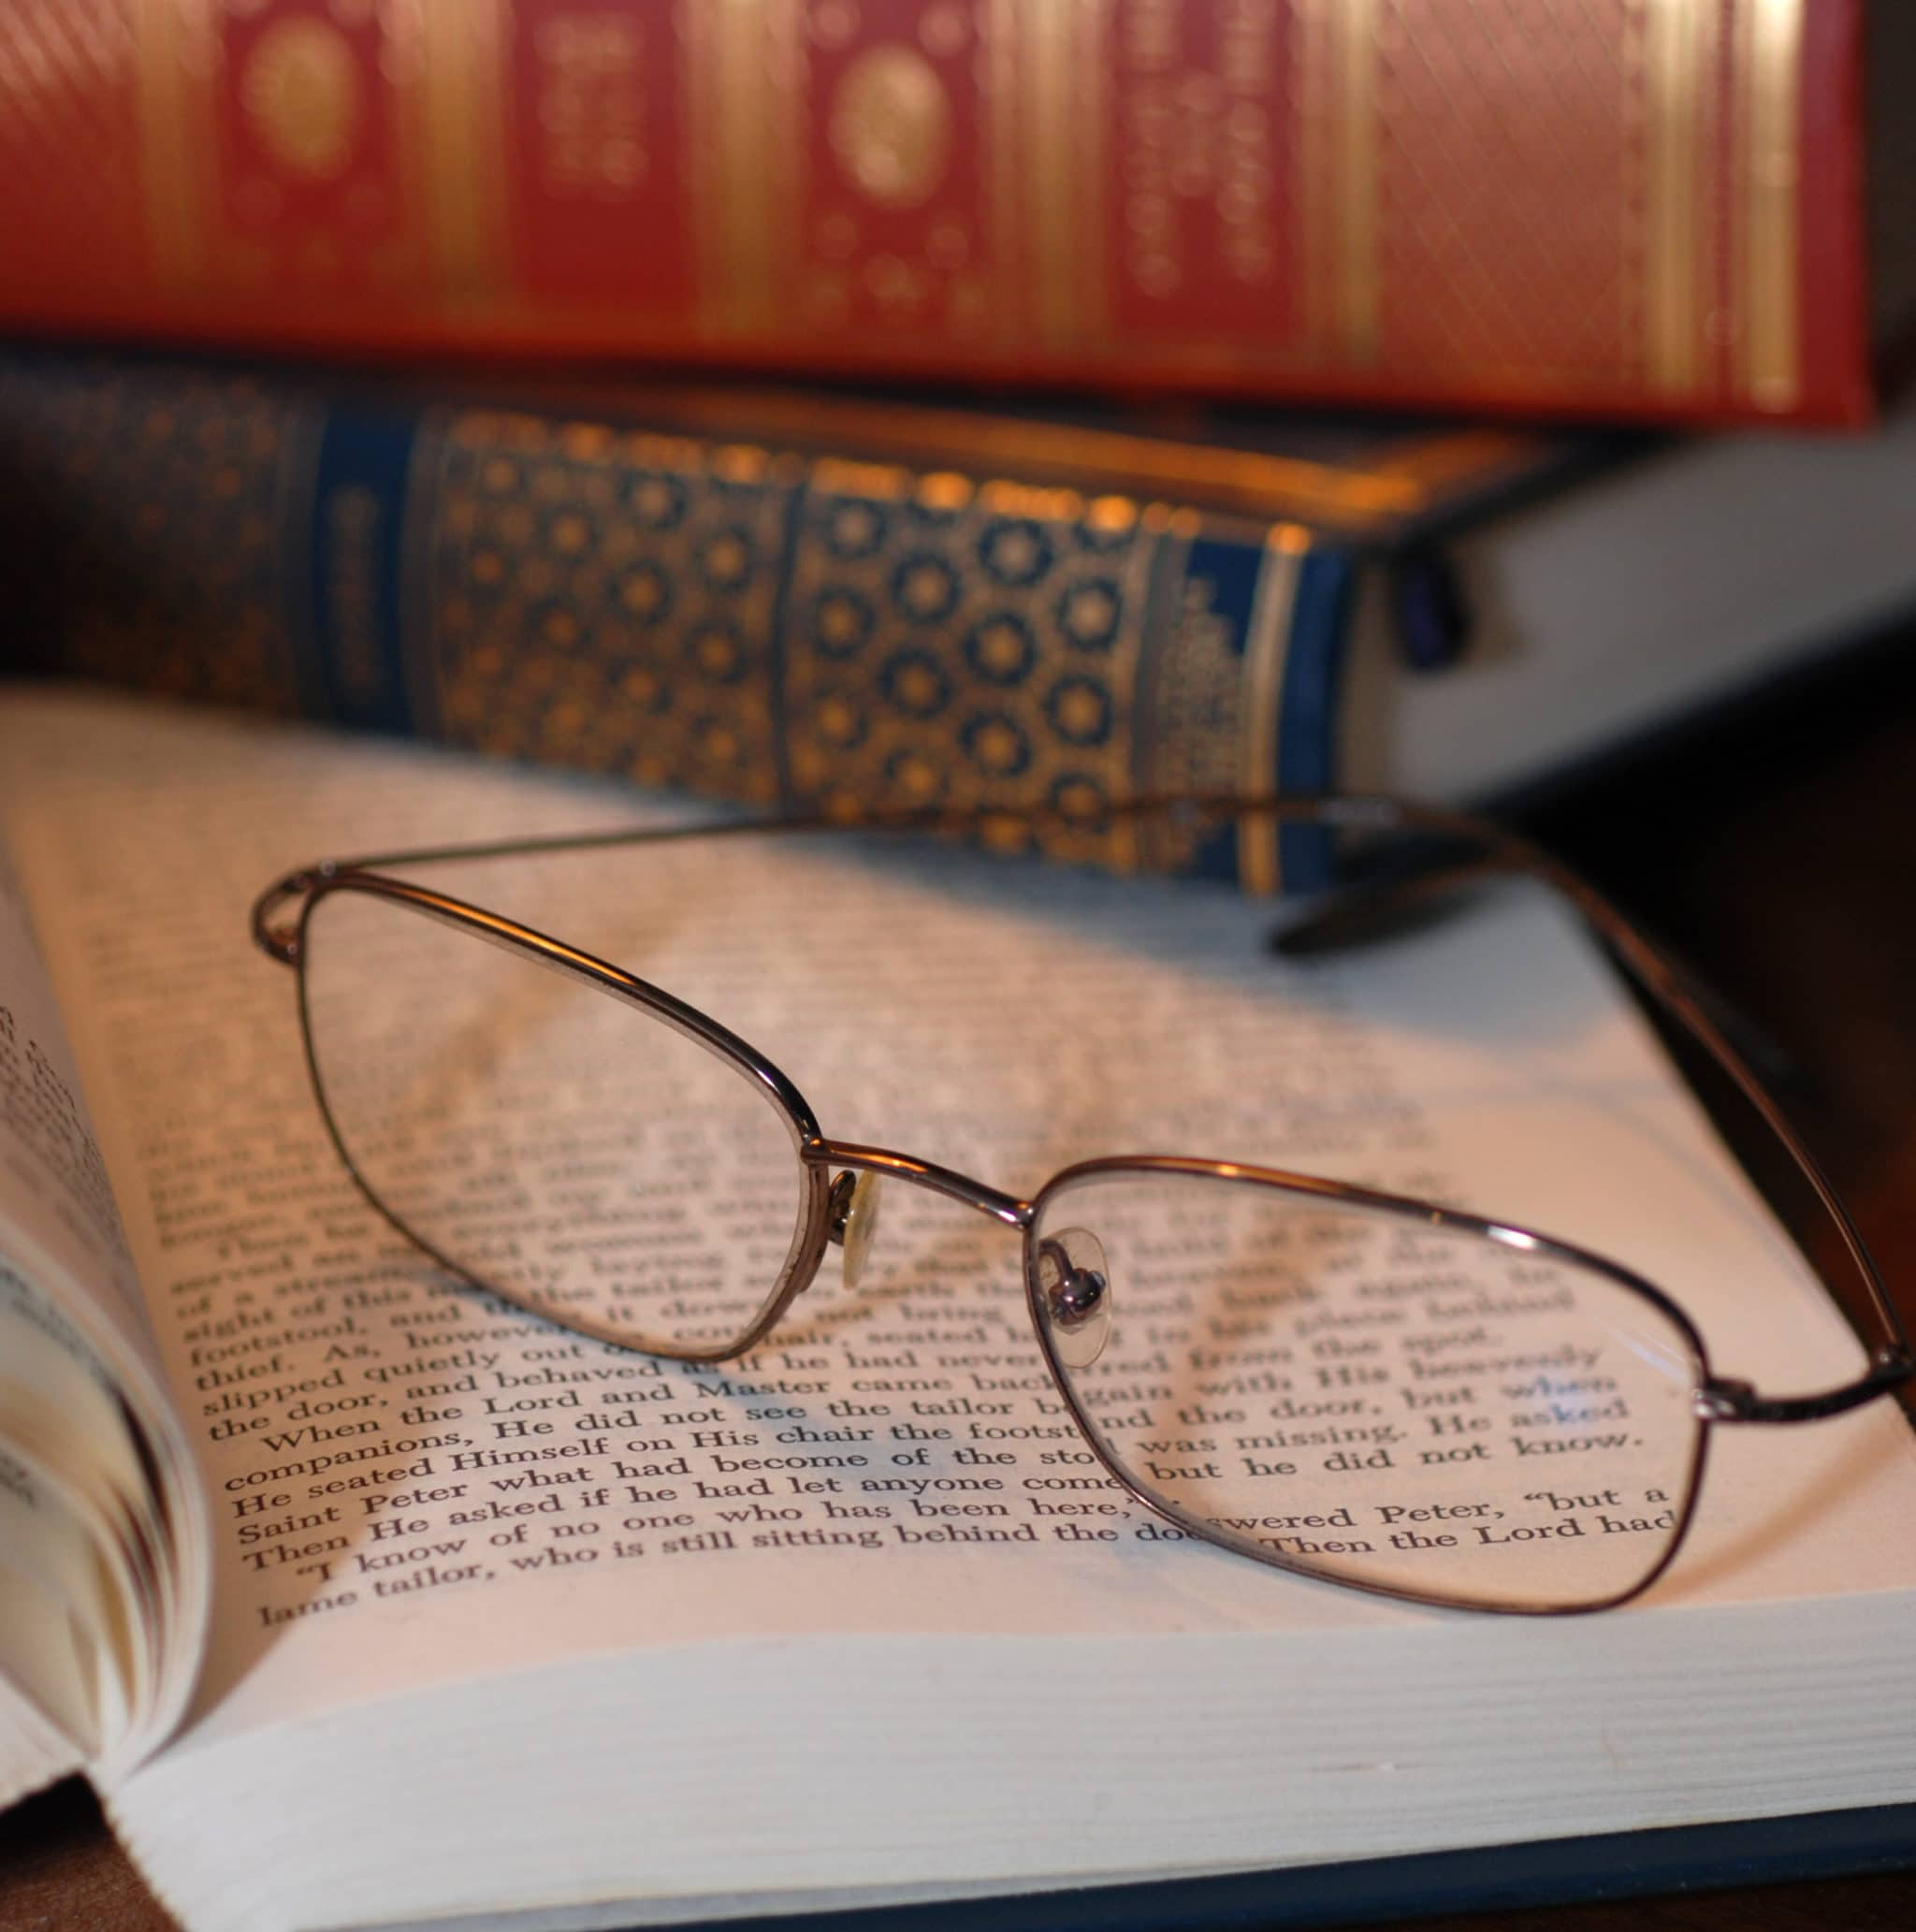 Eyeglasses resting on stack of academic books on desk